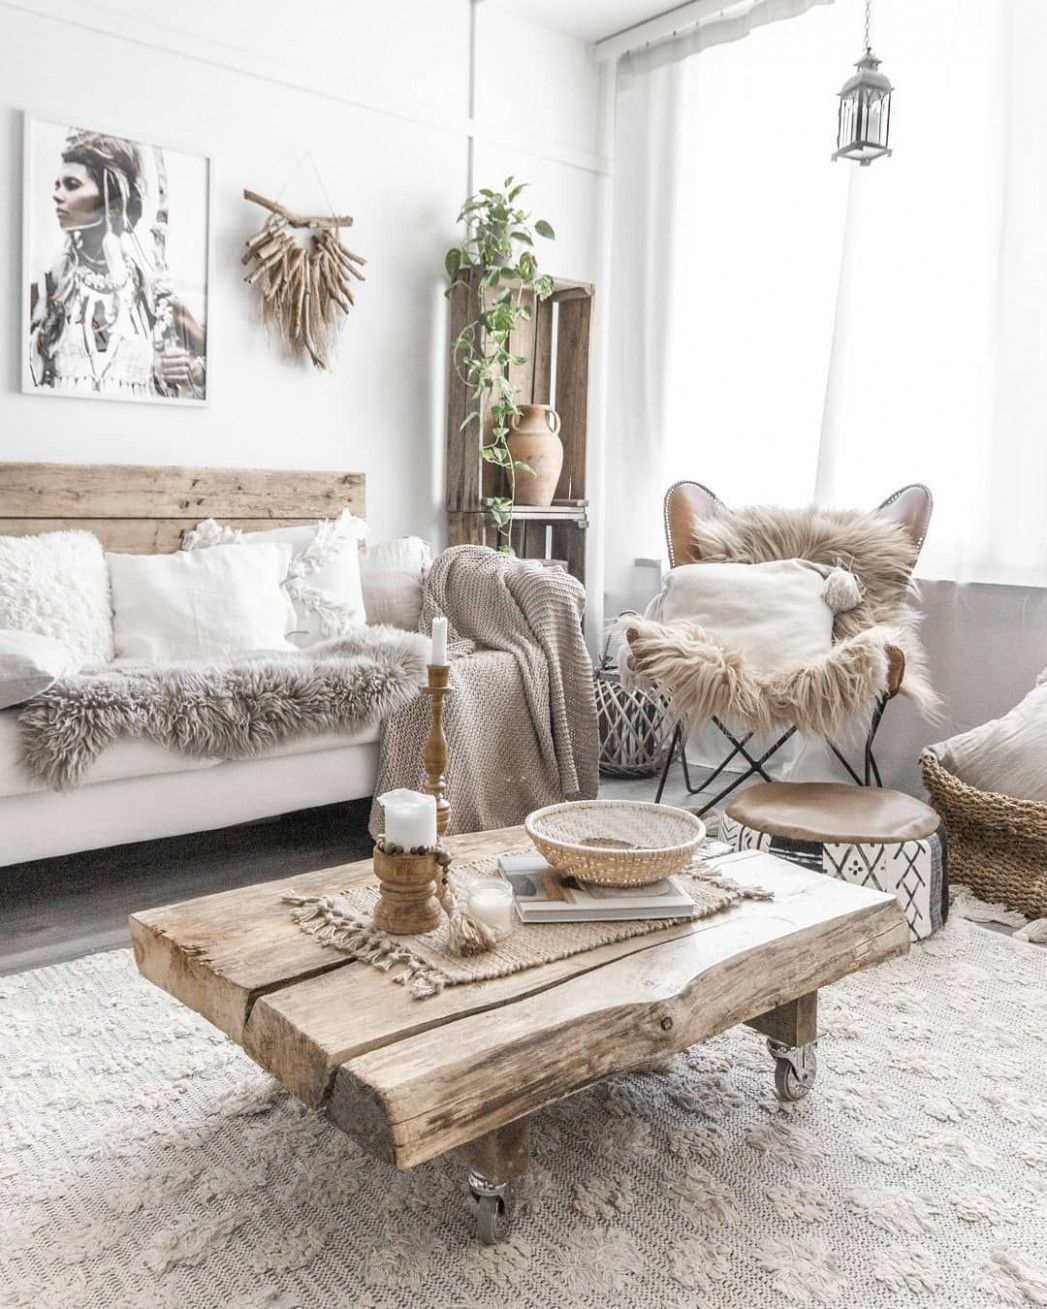 Home Decor Living Room Rustic Boho Chic Shabbychic Rustic Boho Living In 2020 Rustic Chic Living Room Boho Living Room Decor Rustic Living Room #rustic #living #room #design